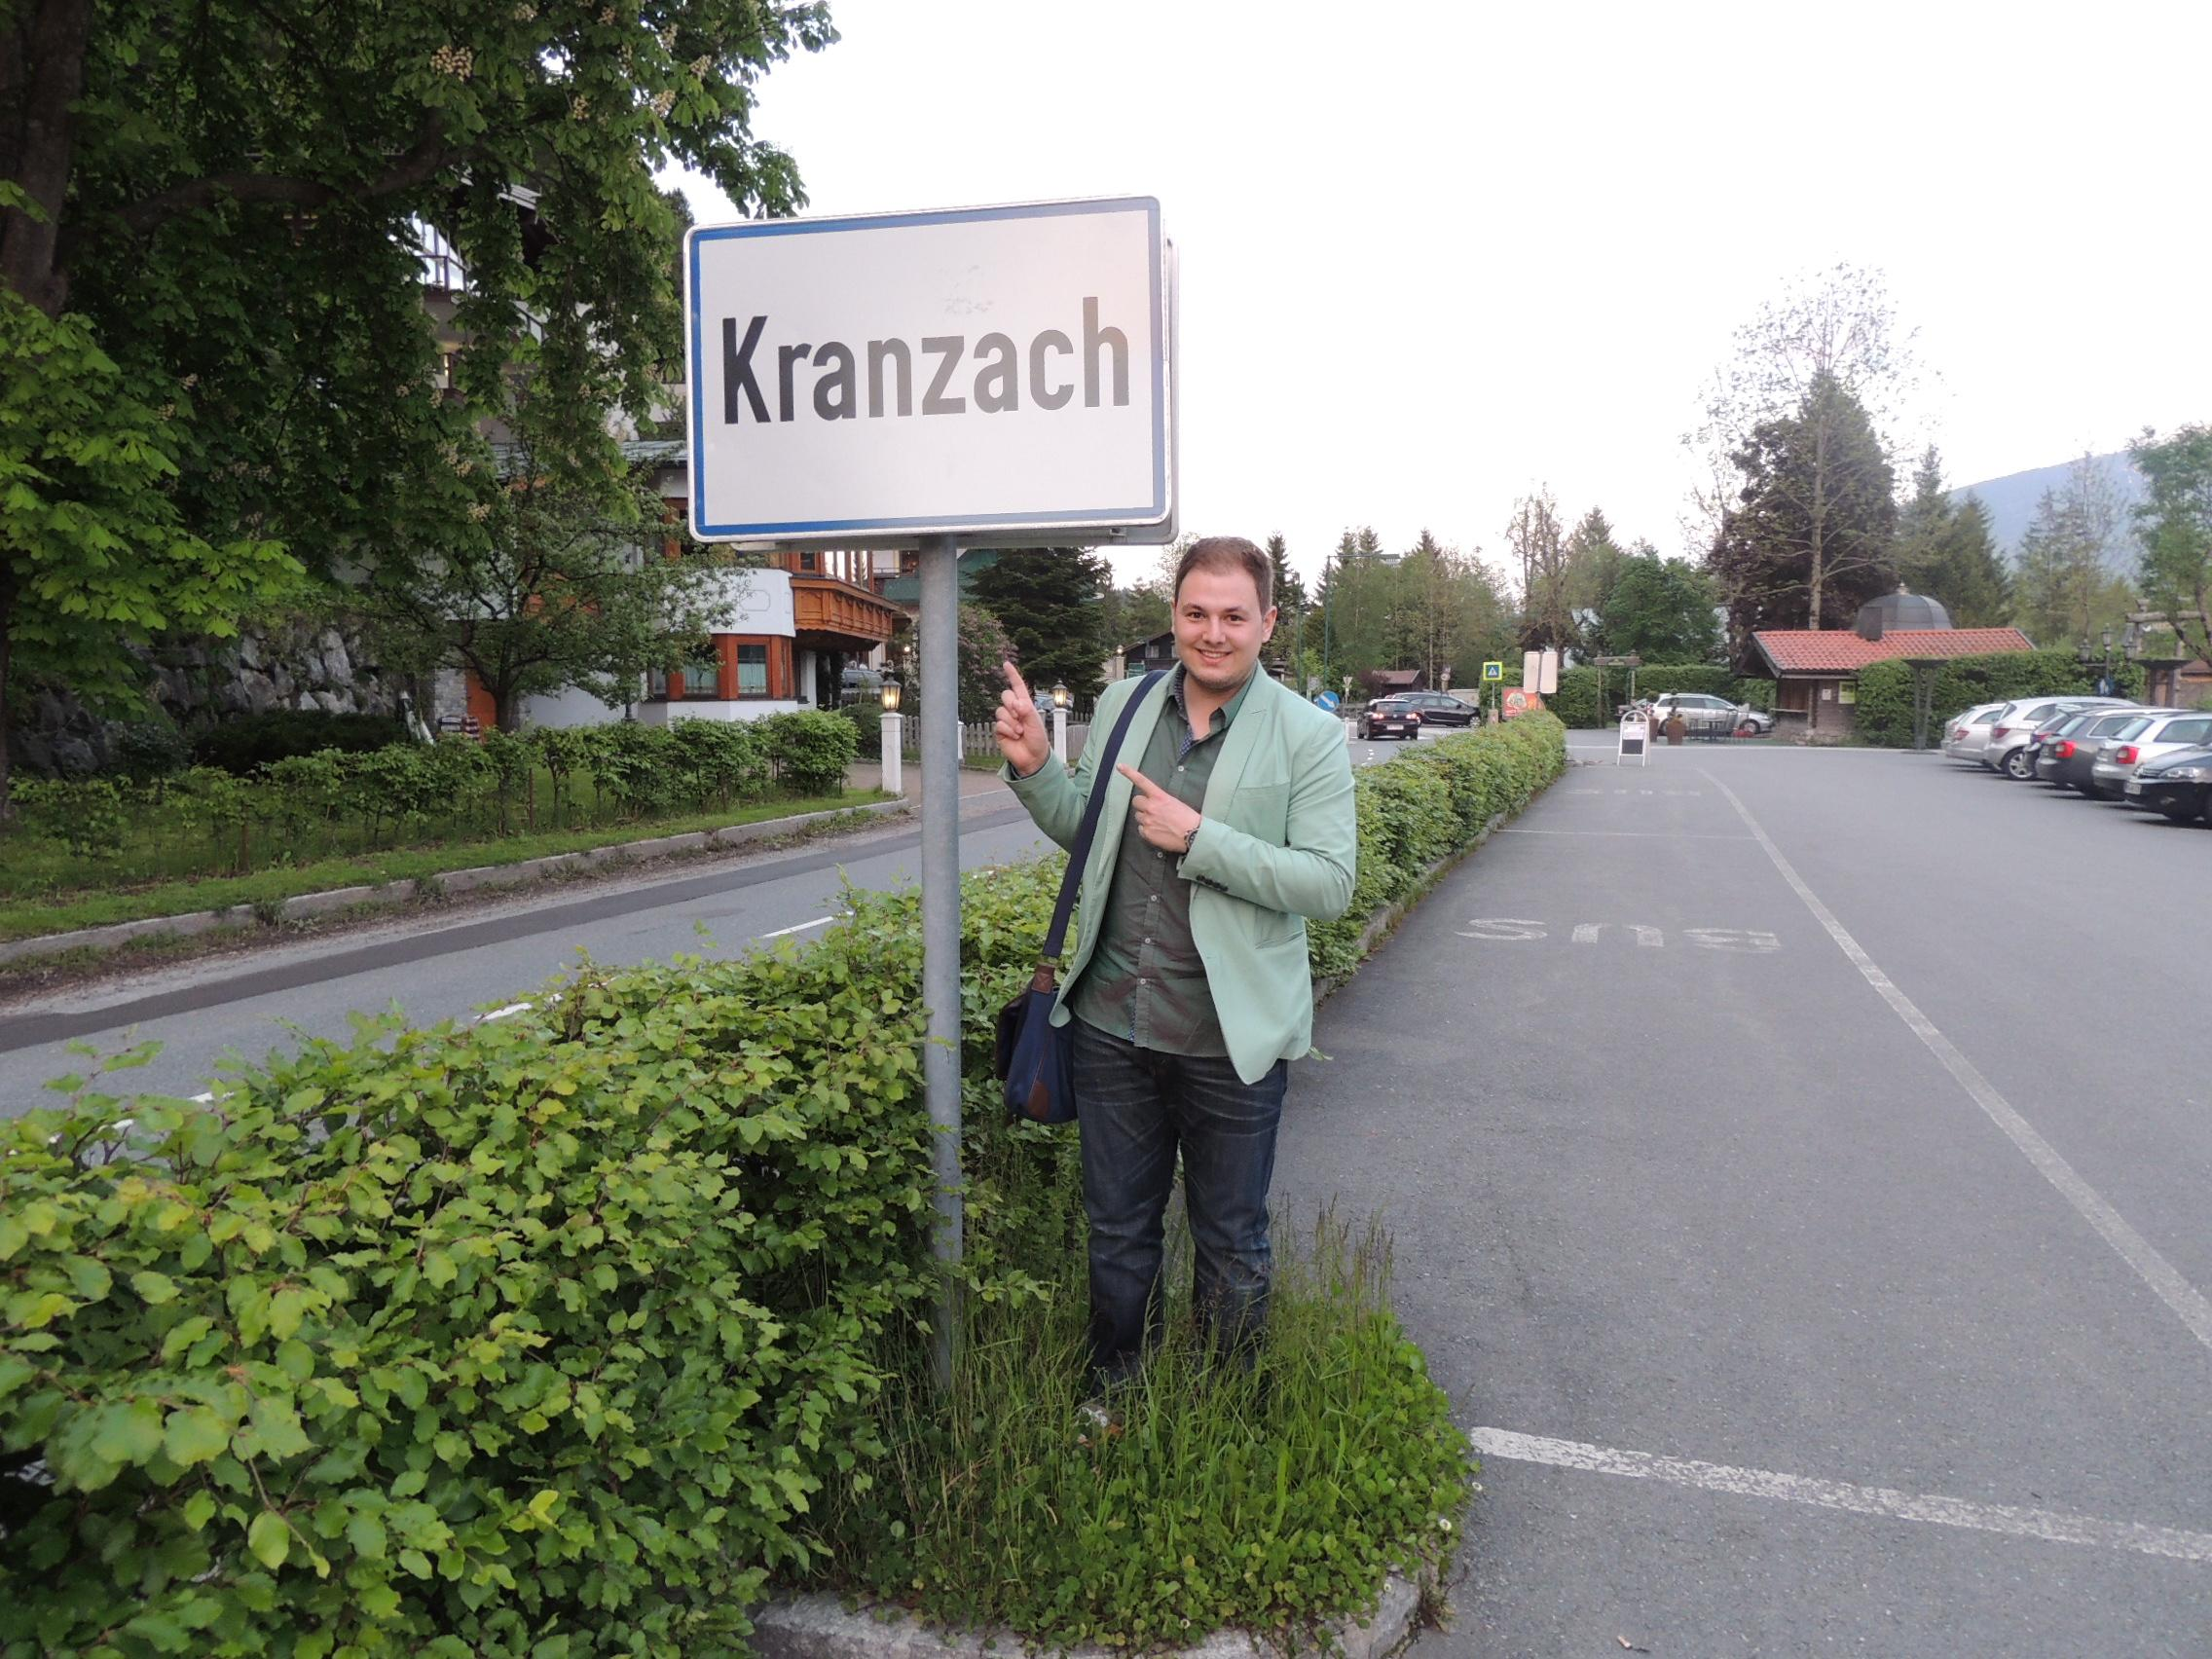 Welcome in Kranzach (Josh)